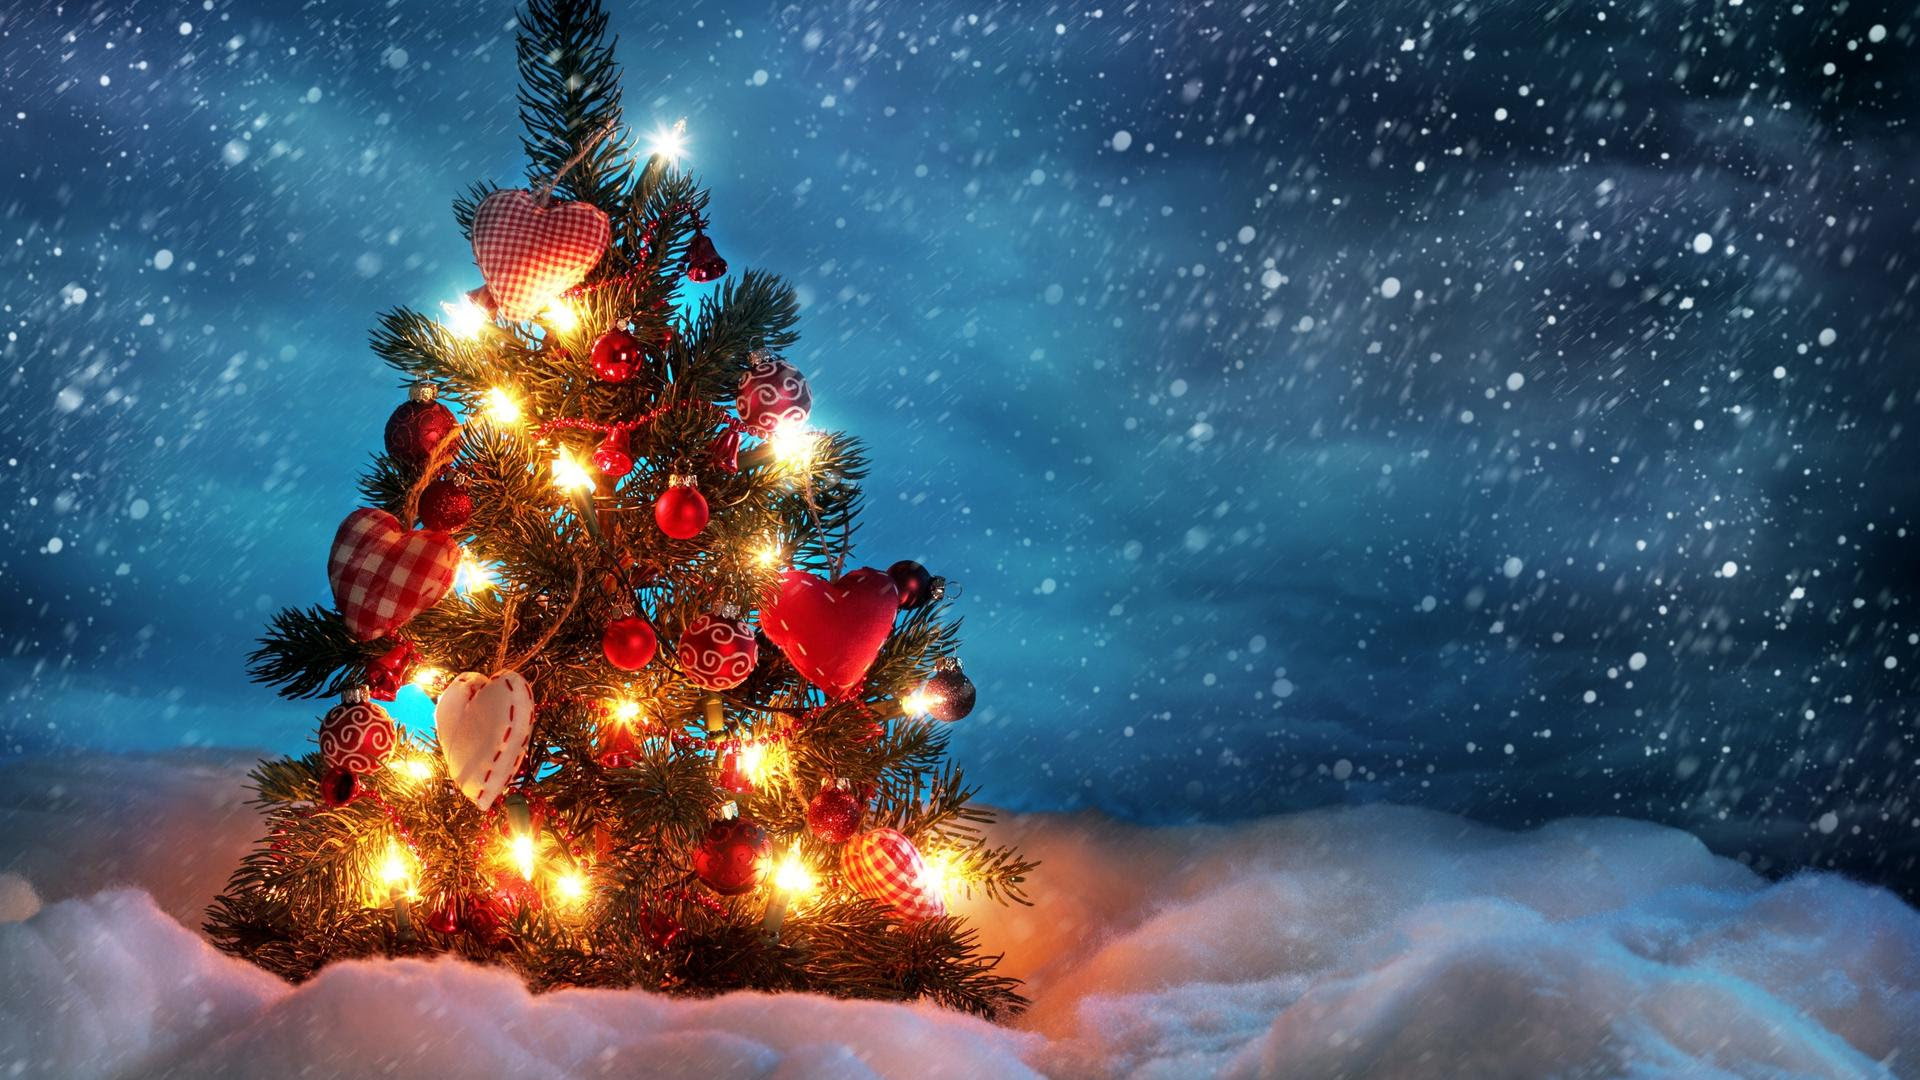 Snowing Heavily Over The Christmas Tree Hd Wallpaper